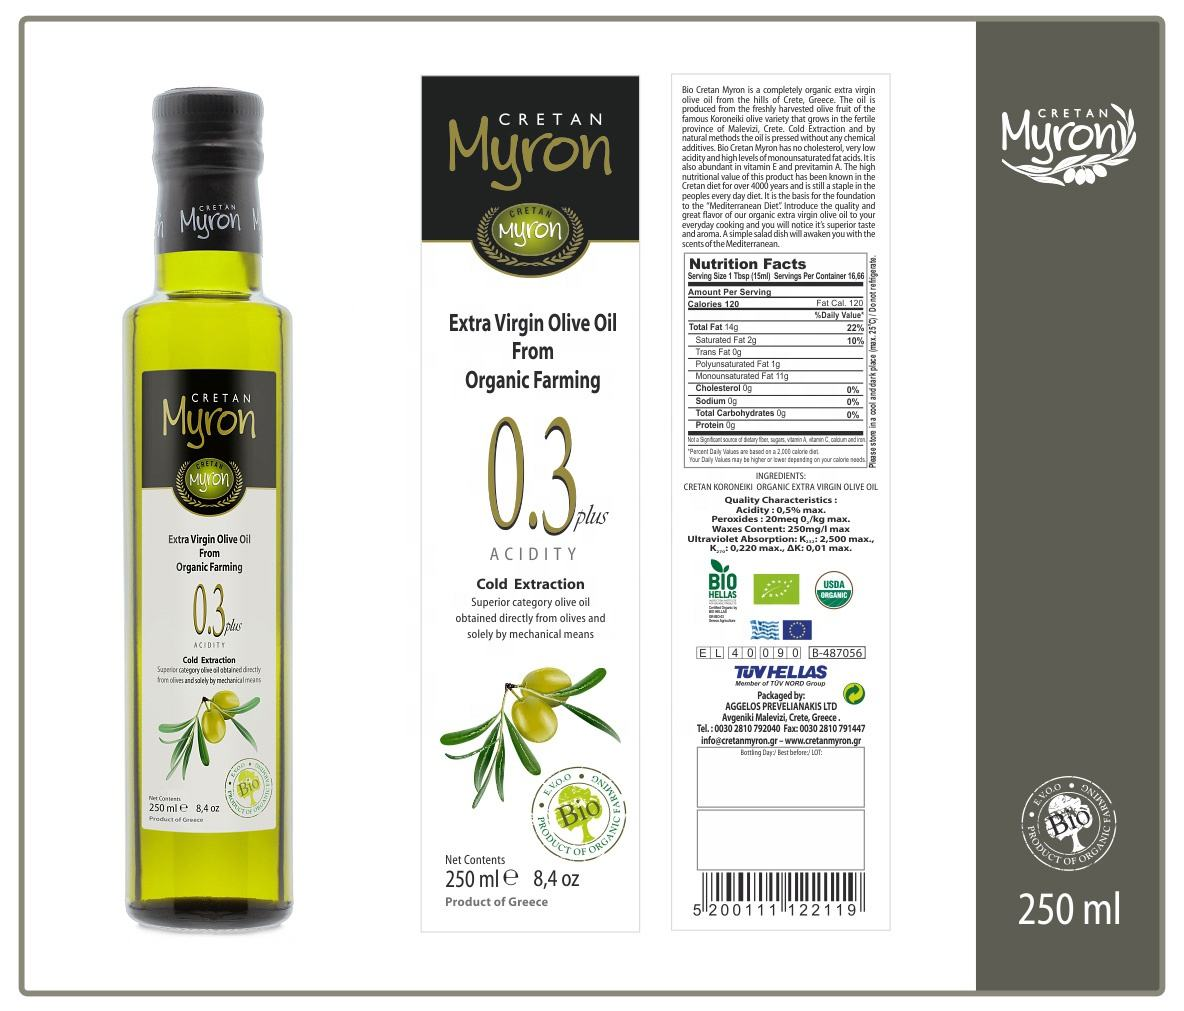 HIGH QUALITY ORGANIC EXTRA VIRGIN OLIVE OIL